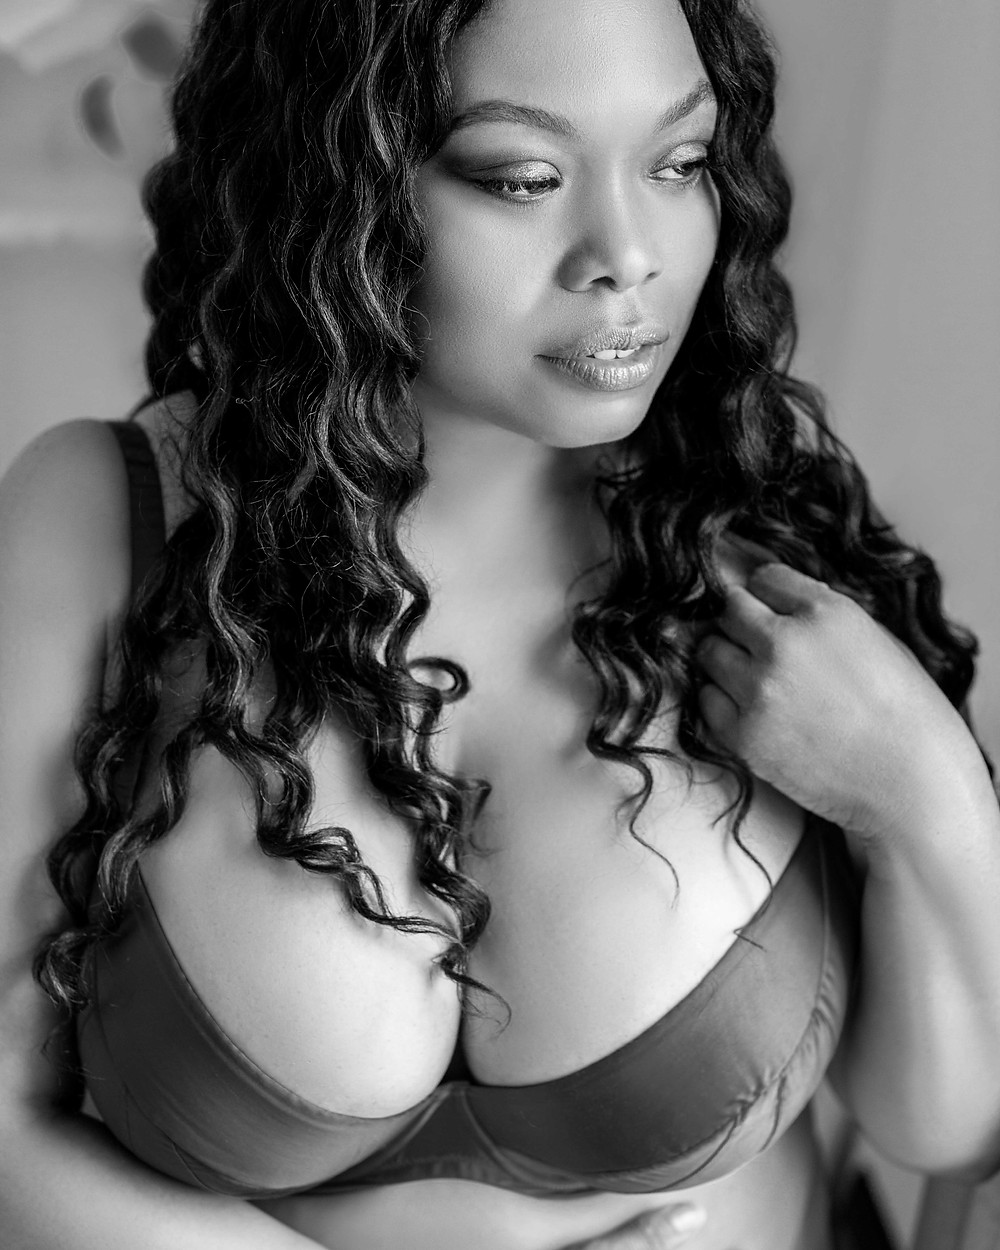 Boudoir photography - Daisy Rey Photography - black and white